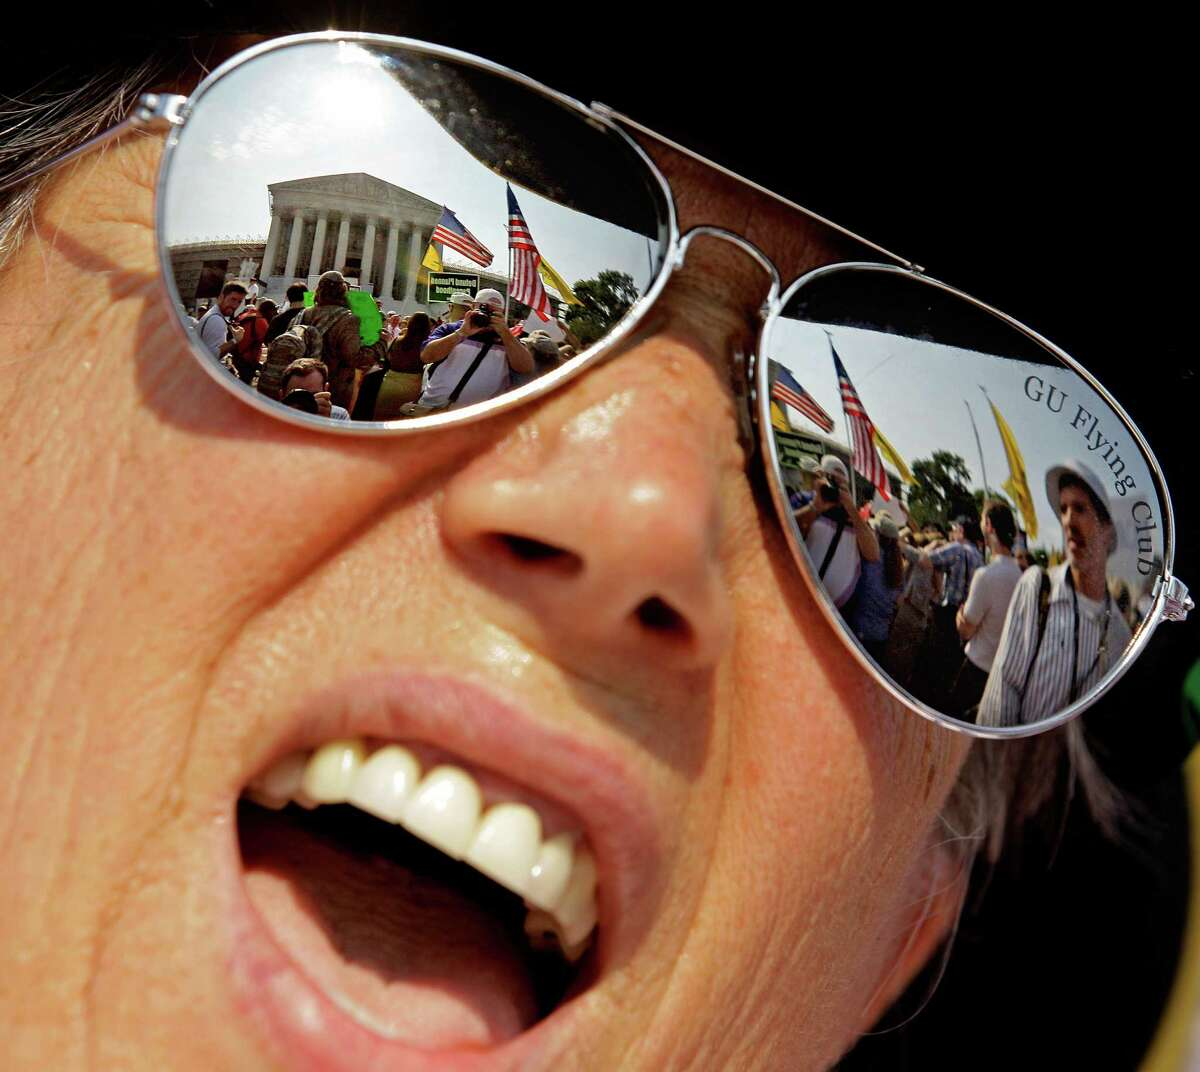 The Supreme Court is reflected in the sunglasses of Susan Clark, of Washington, as she demonstrates against President Barack Obama's health care law while awaiting the court's ruling, Thursday, June 28, 2012, in Washington. (AP Photo/David Goldman)